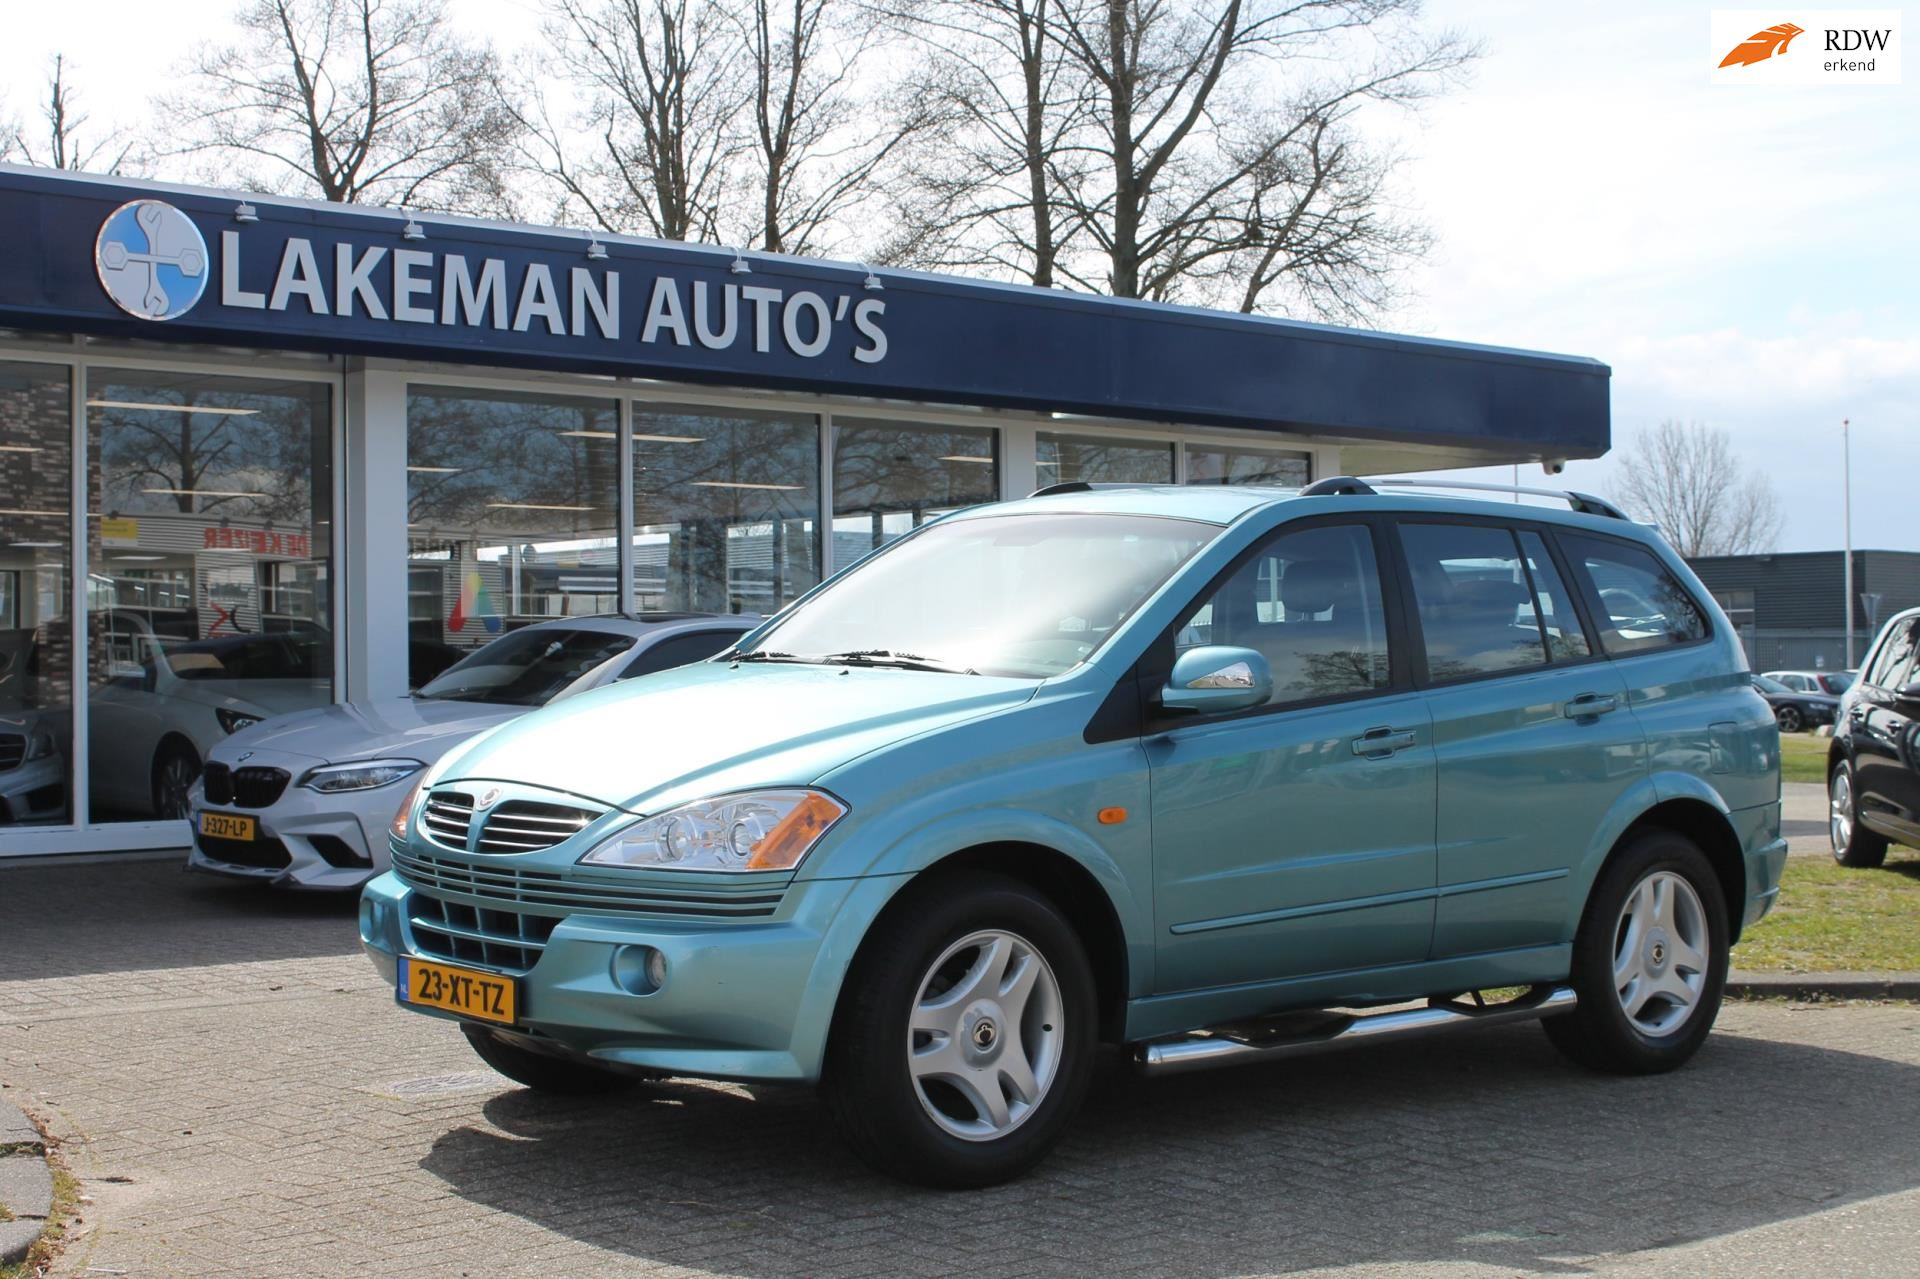 SsangYong Kyron occasion - Lakeman auto's Almere B.V.